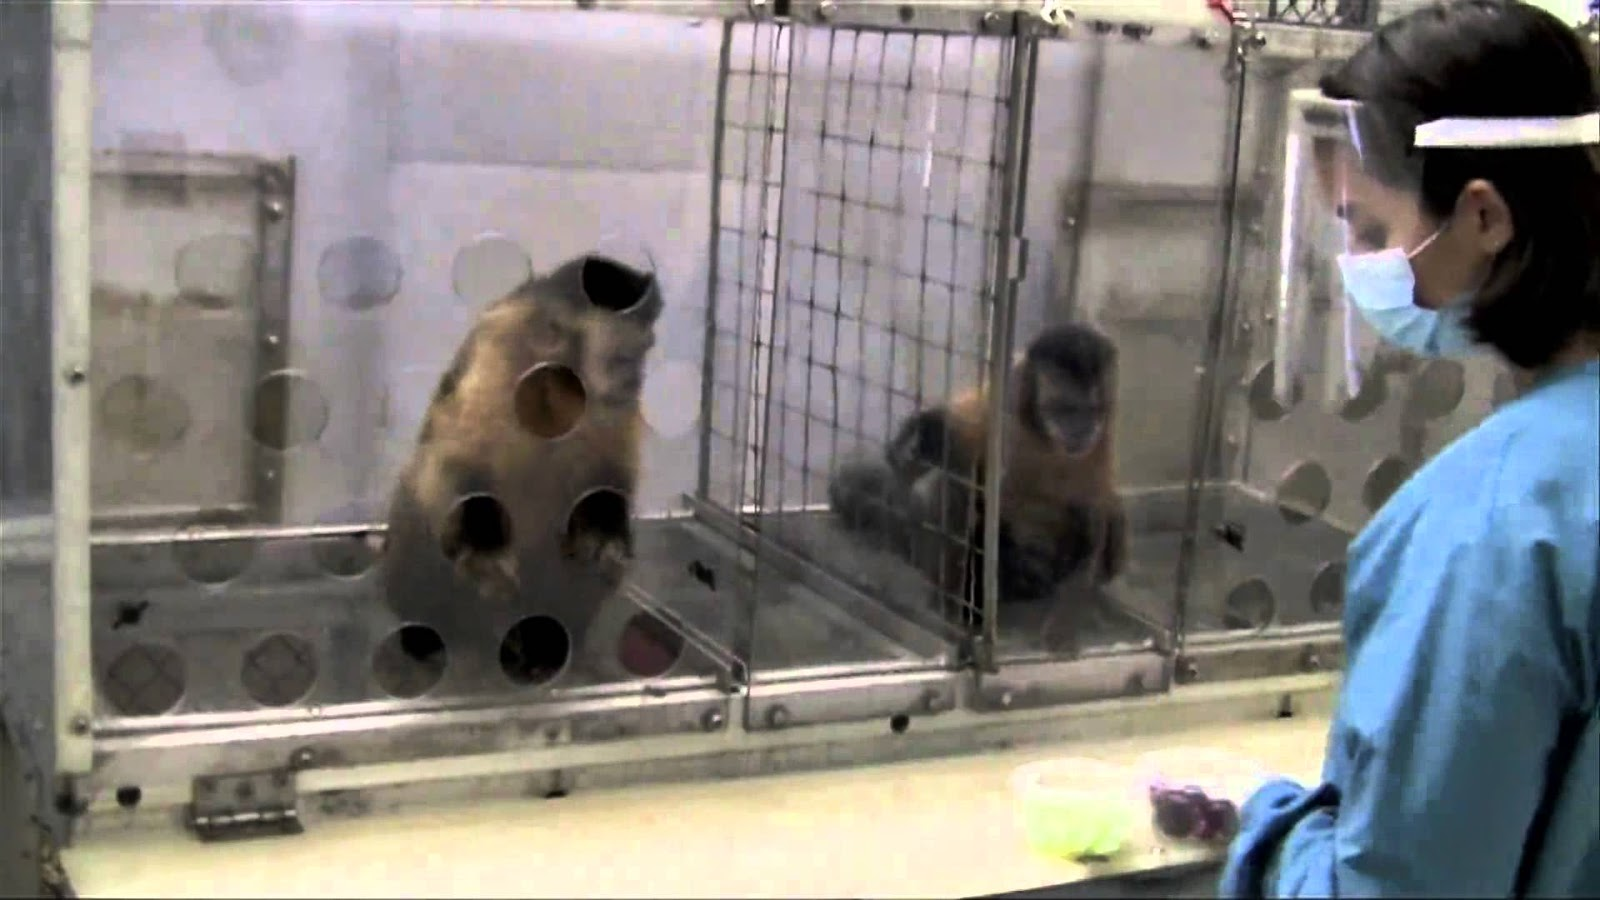 2 Monkeys Were Paid Unequally; See What Happens Next